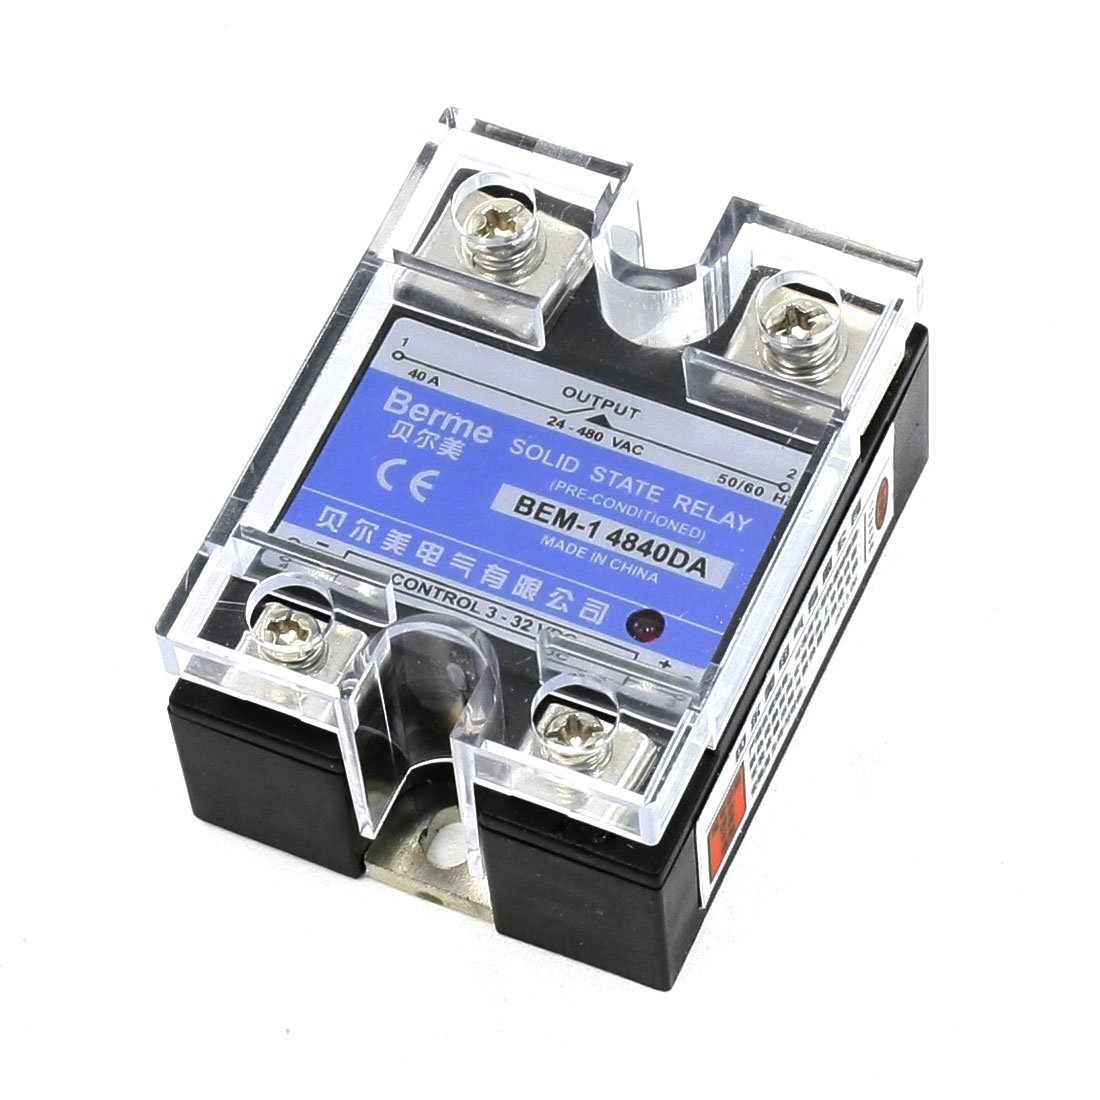 LHLL-24-480V AC DC to 3-32VDC Output Single Phase SSR Solid State Relay 40A 20dd ssr control 3 32vdc output 5 220vdc single phase dc solid state relay 20a yhd2220d